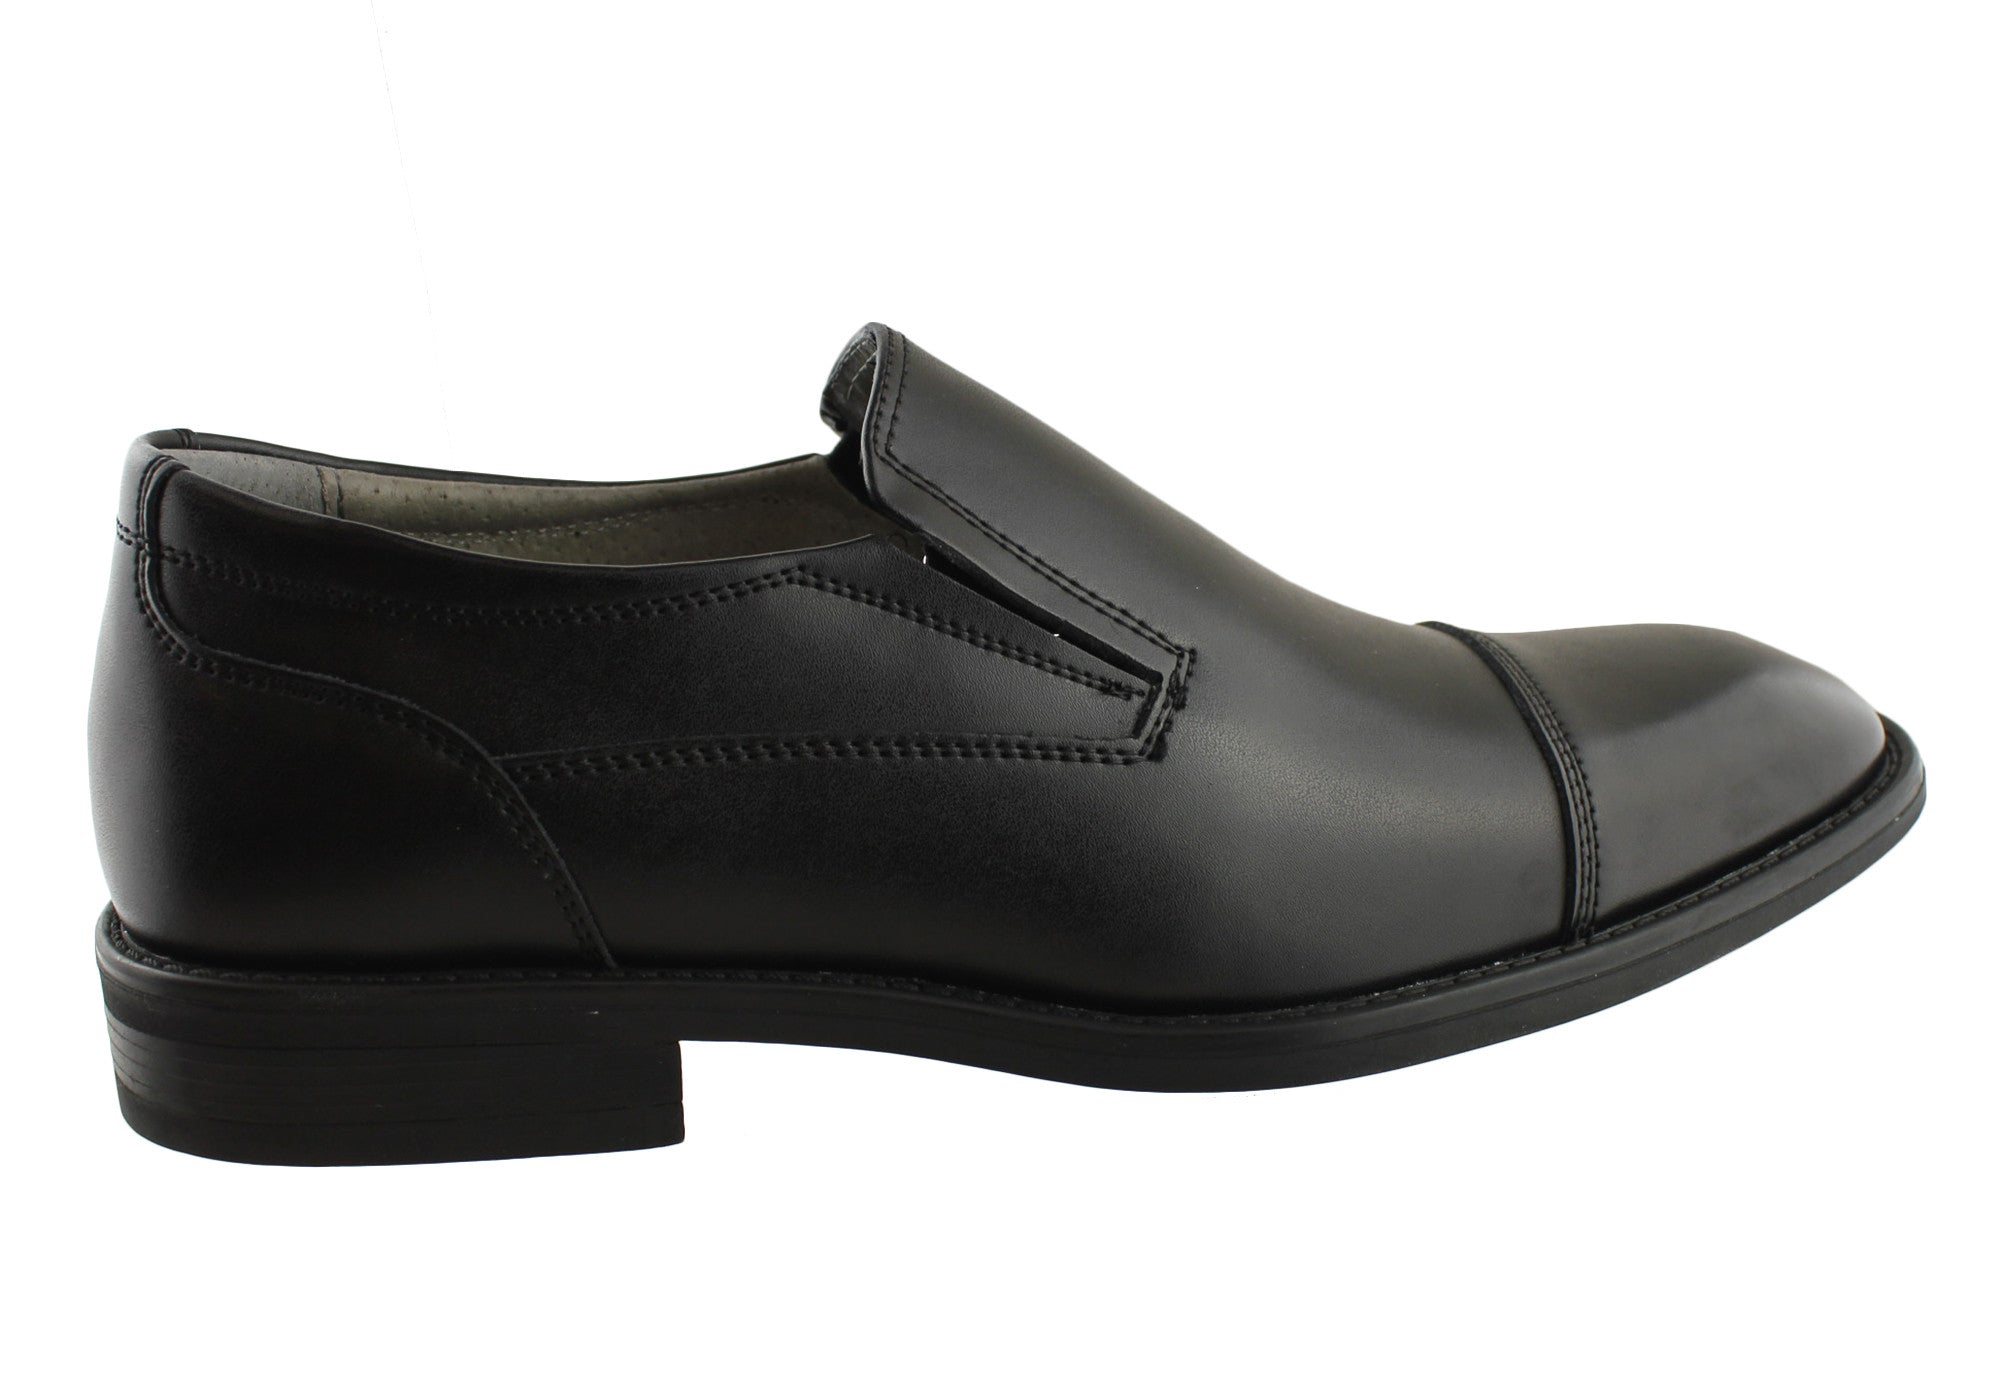 Julius Marlow Antony Mens Slip On Leather Dress Shoes